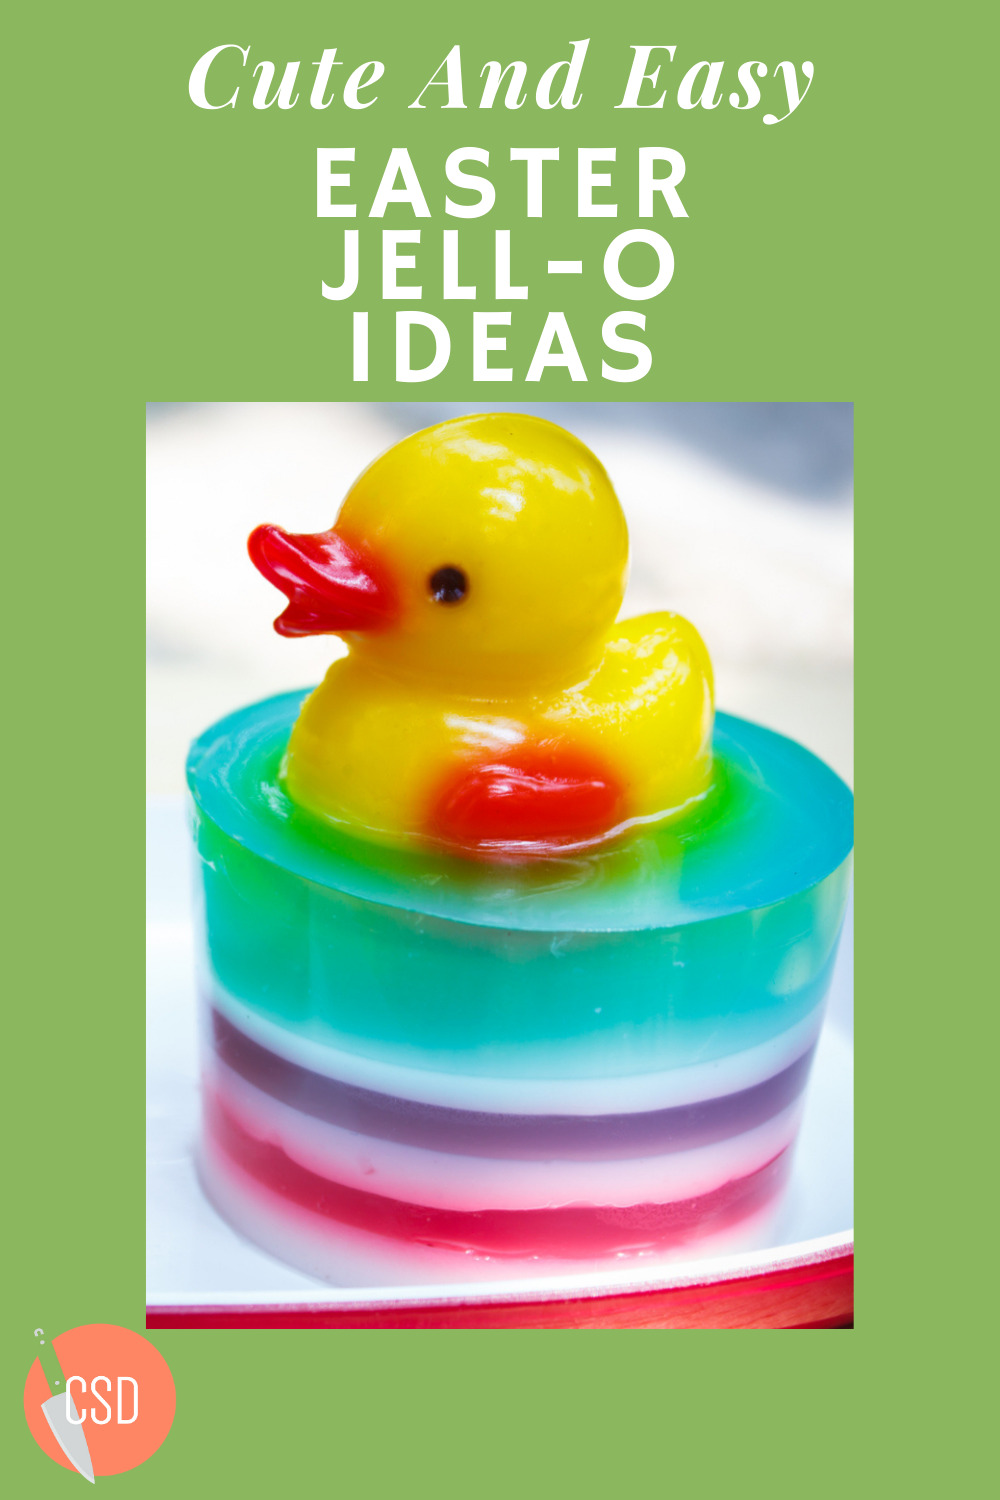 Cutsidedown.com is the best place to find tasty food and drink recipes! Find the best dish to serve for any occasion. Don't miss out on a timeless staple with these fun and easy Easter Jell-O ideas!